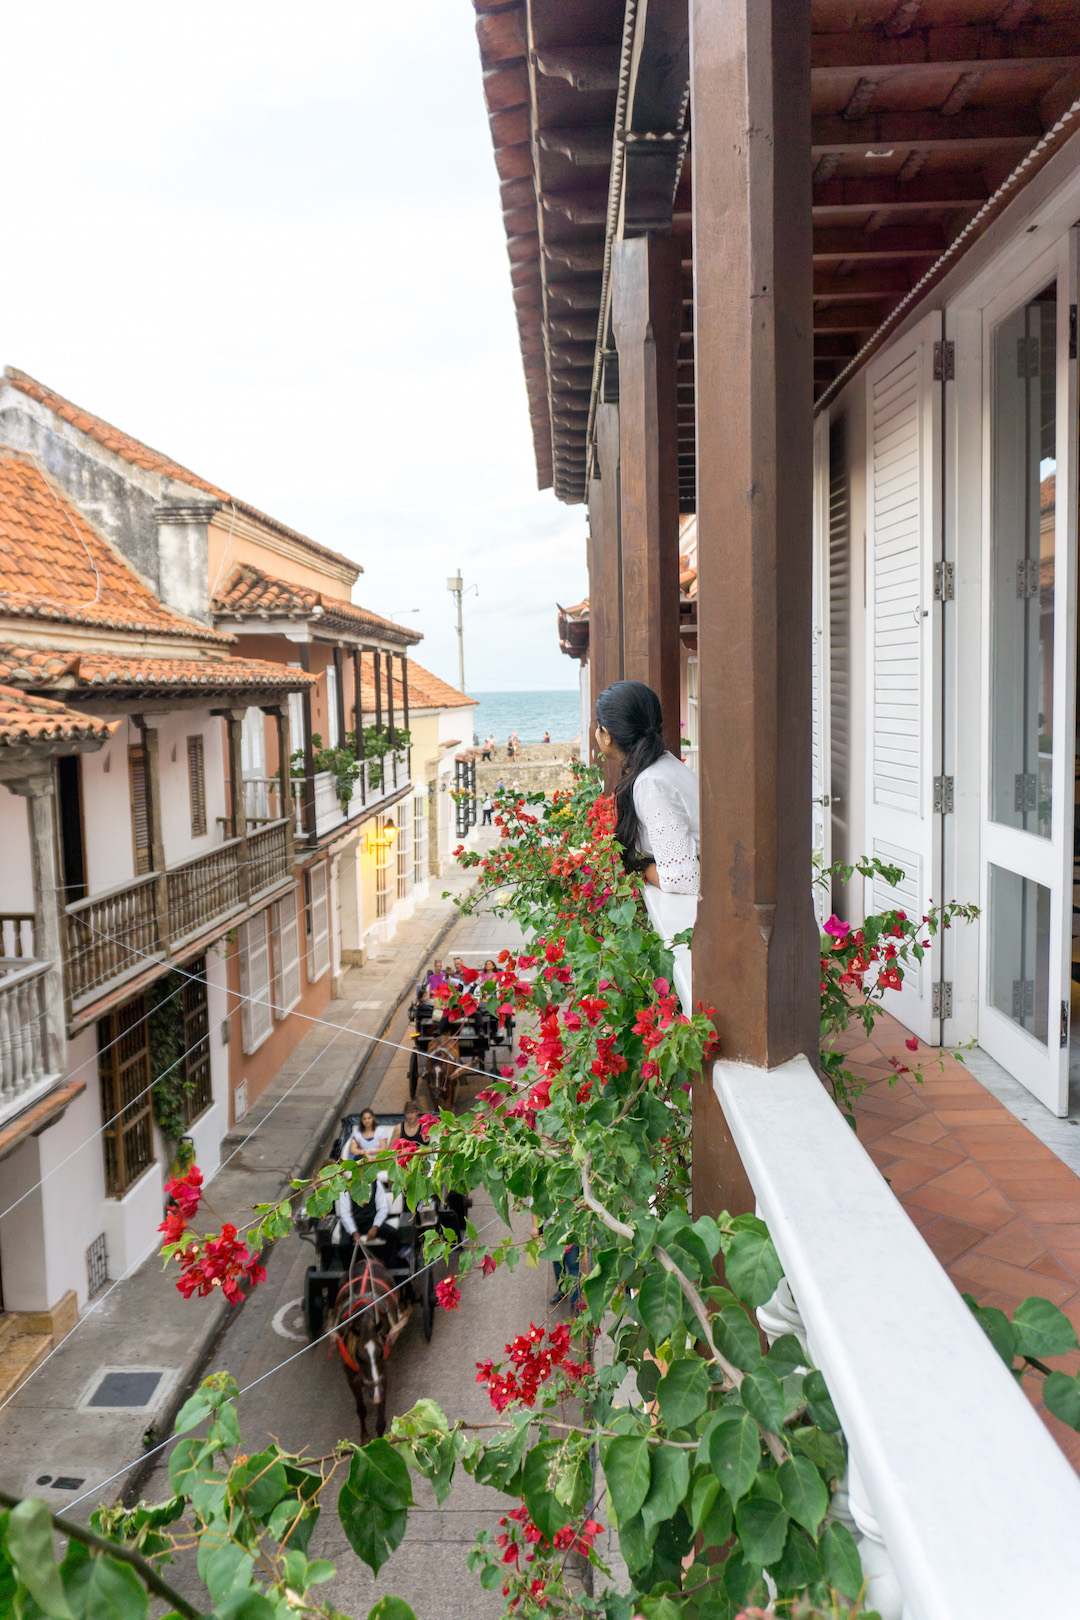 Balcony of Casa Don Sancho Cartagena